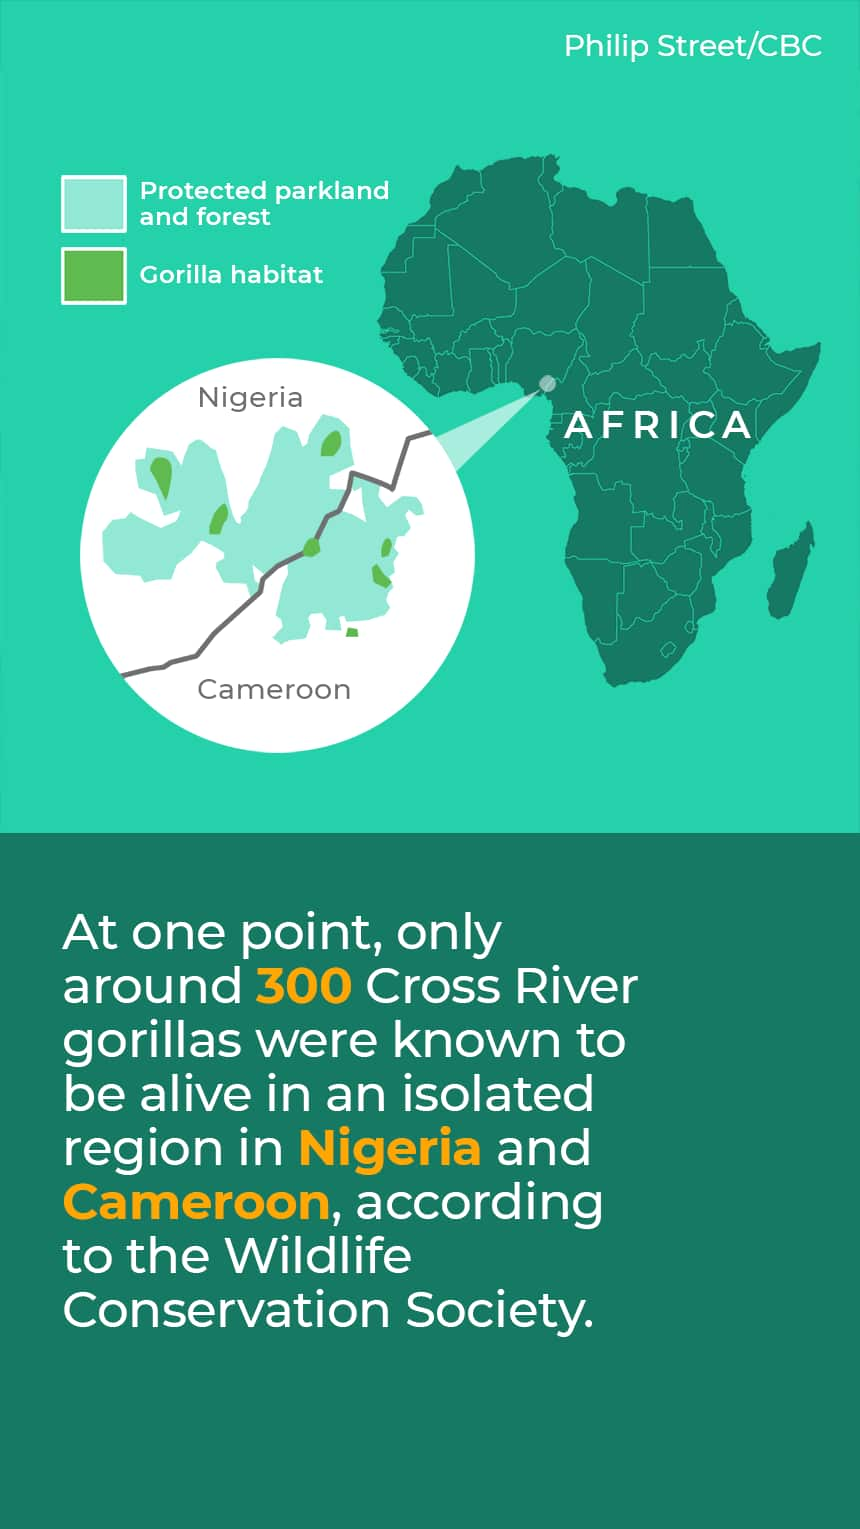 TEXT: At one point, only around 300 Cross River gorillas were known to be alive in an isolated region in Nigeria and Cameroon, according to the Wildlife Conservation Society. IMAGE: Map showing protected areas in Nigeria and Cameroon